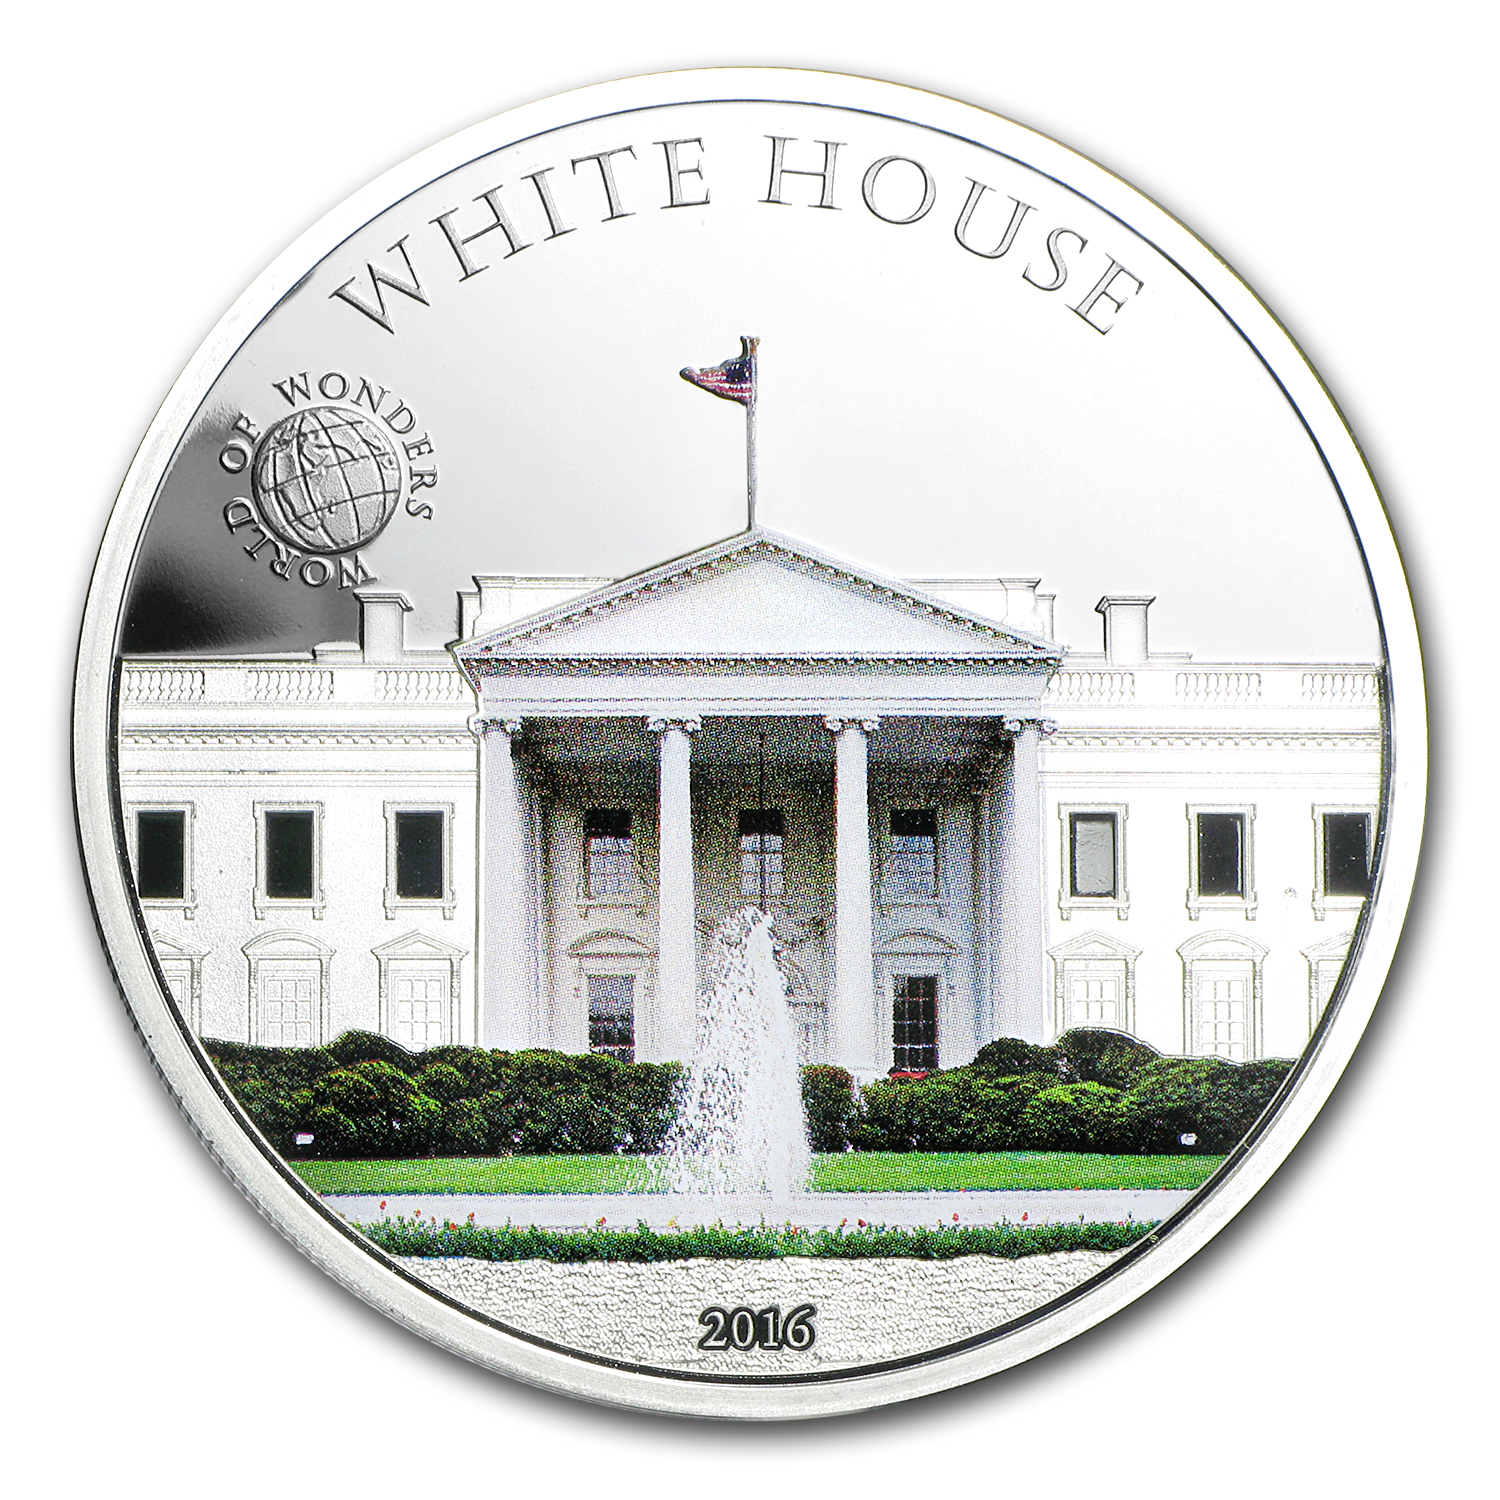 2016 Palau Proof Silver $5 World of Wonders (White House)